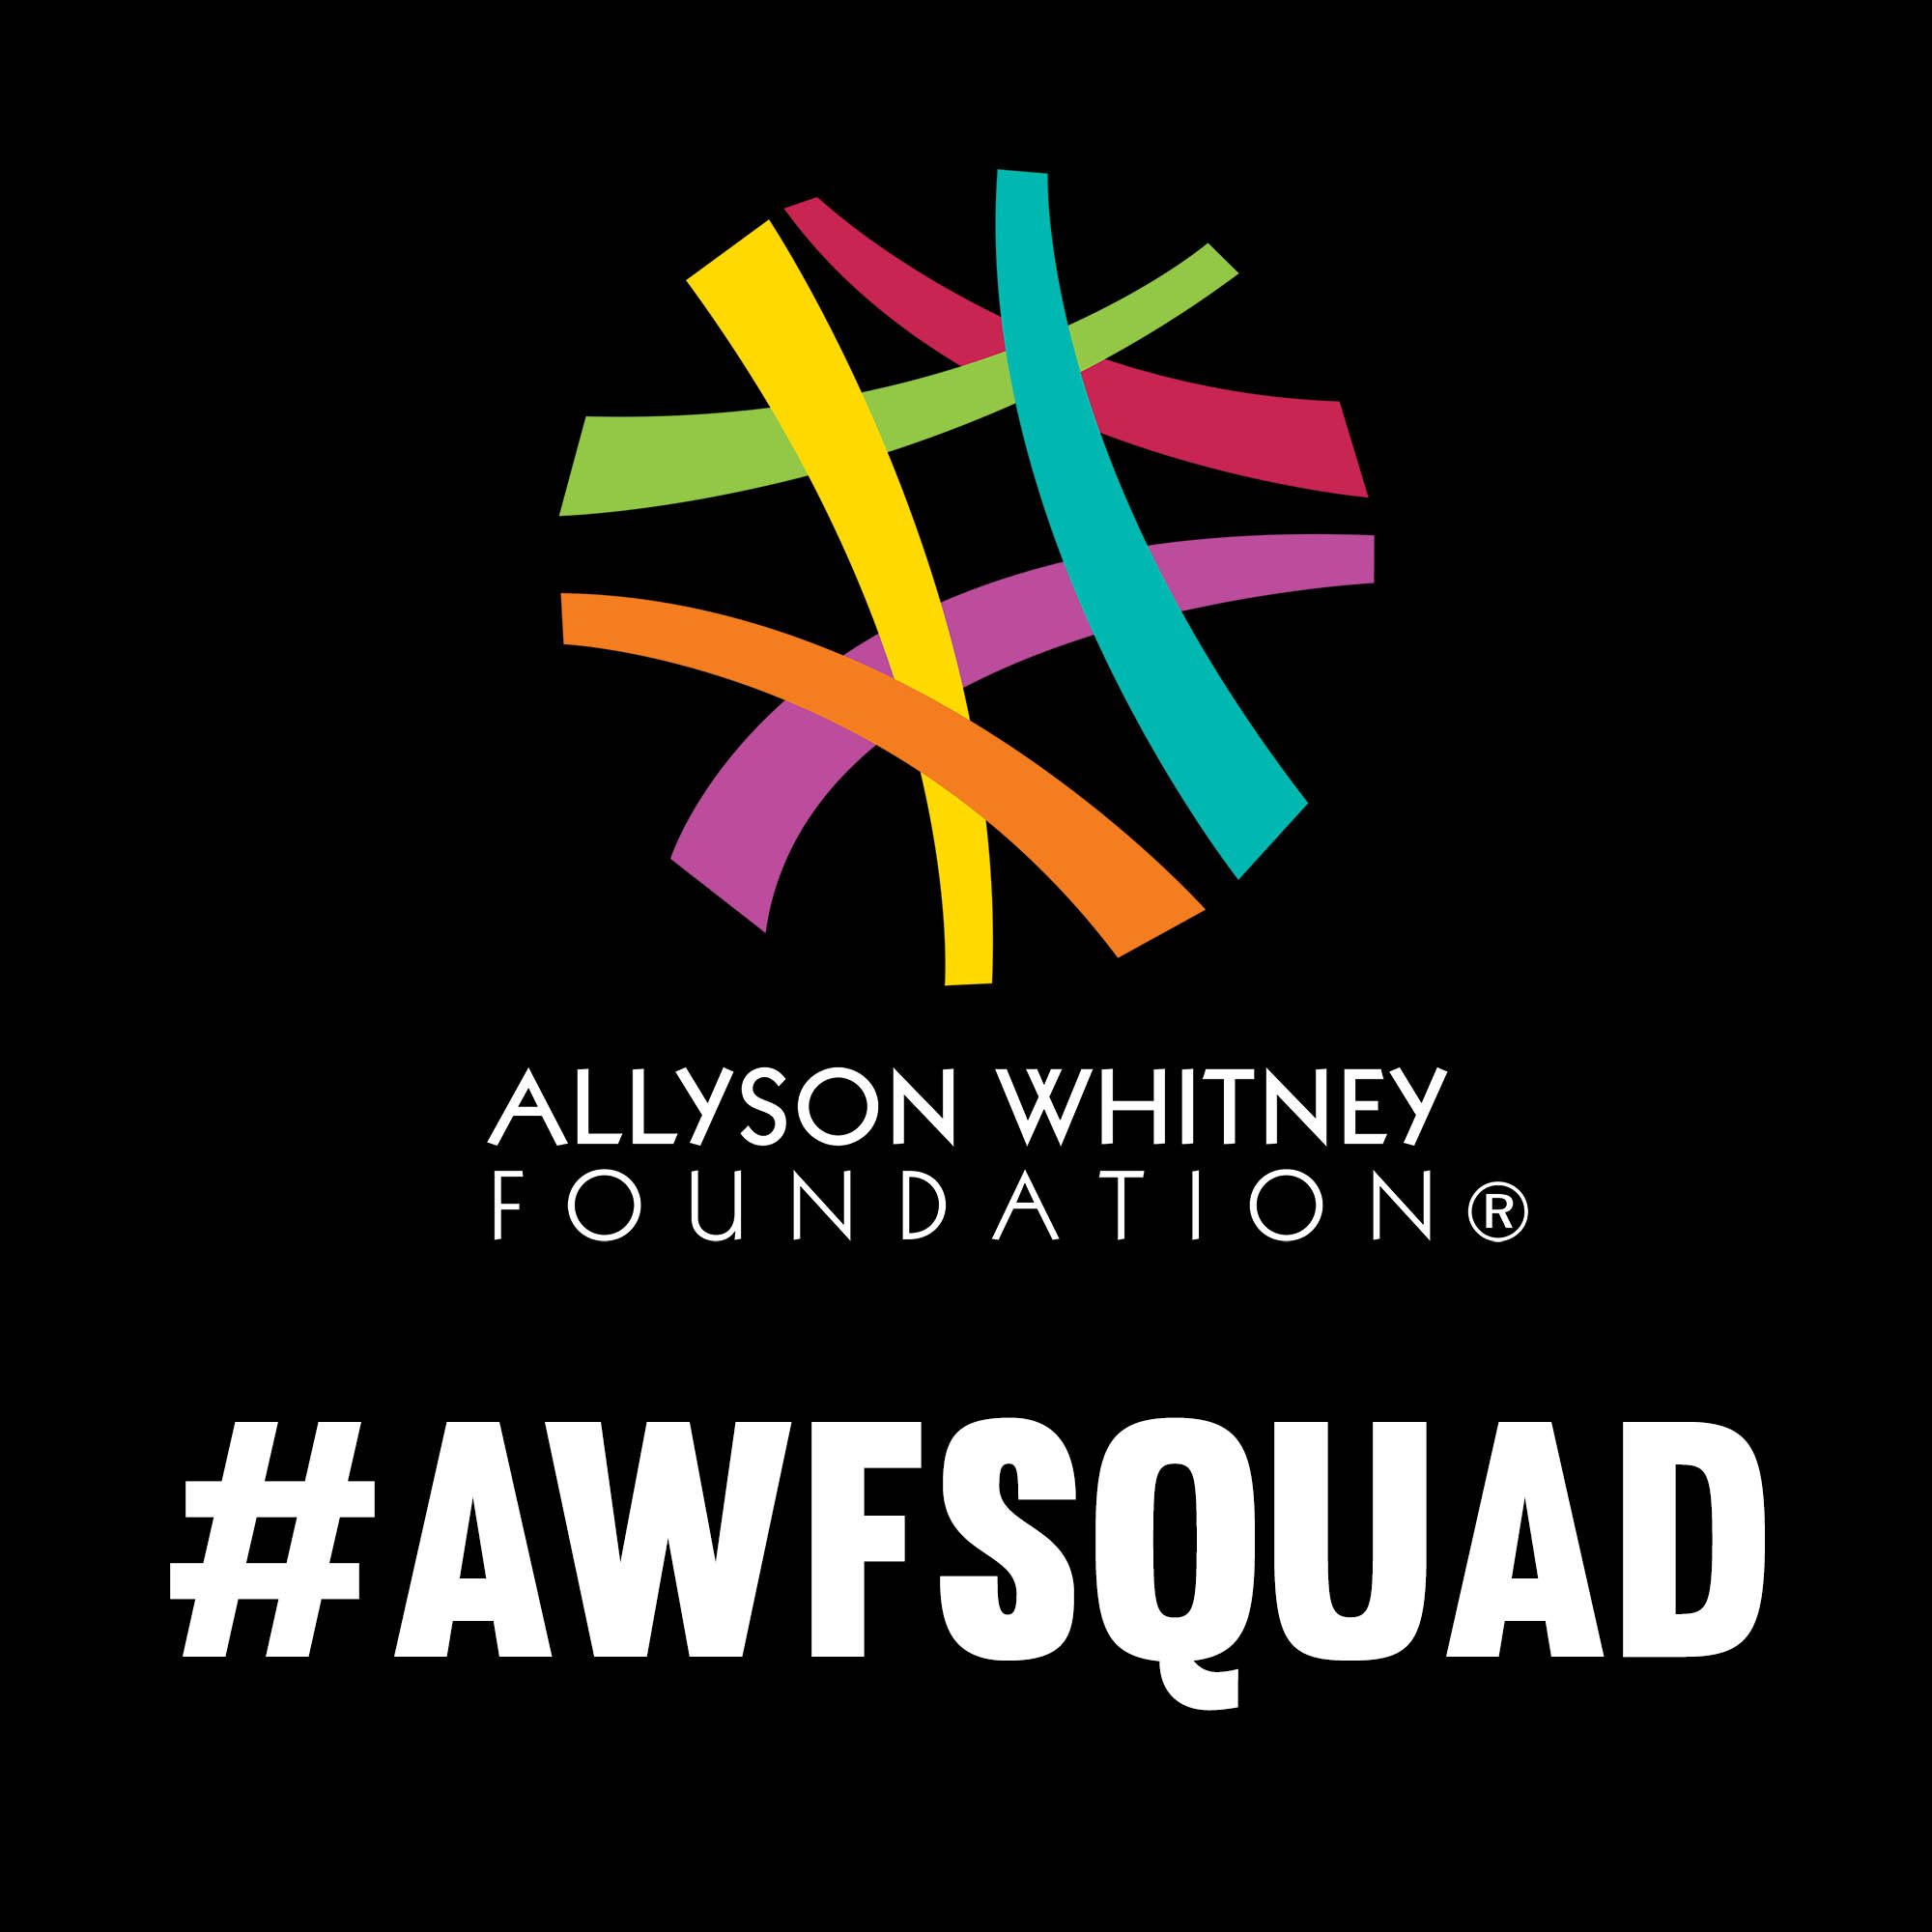 #AWFSQUAD ANYWHERE ANYTIME!